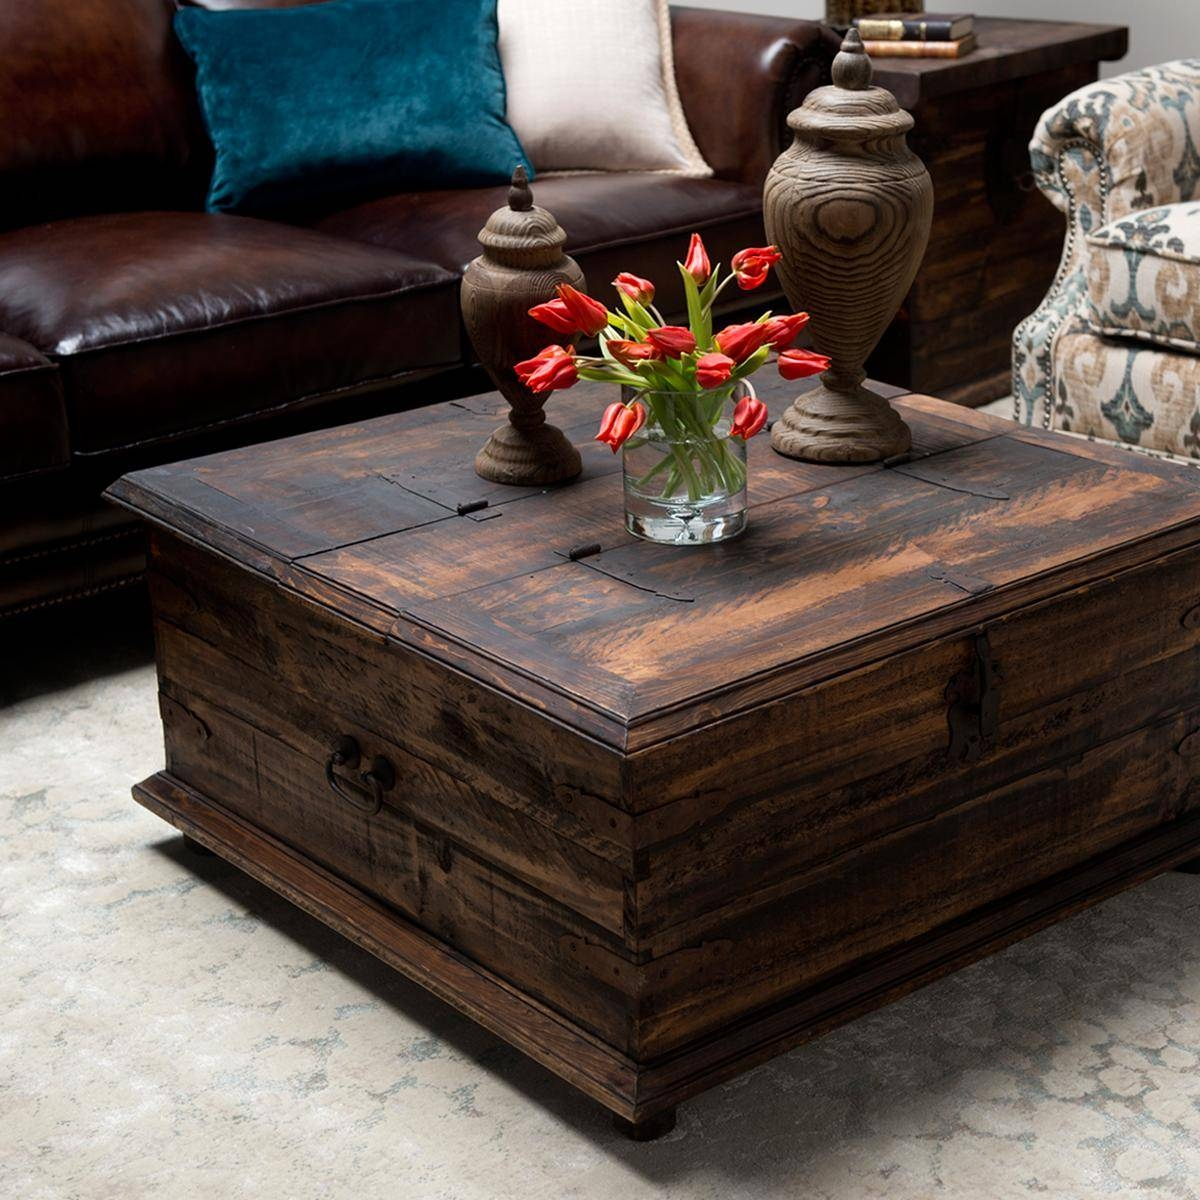 Rustic Coffee Table/double Trunk | Weir's Furniture with regard to Trunks Coffee Tables (Image 23 of 30)